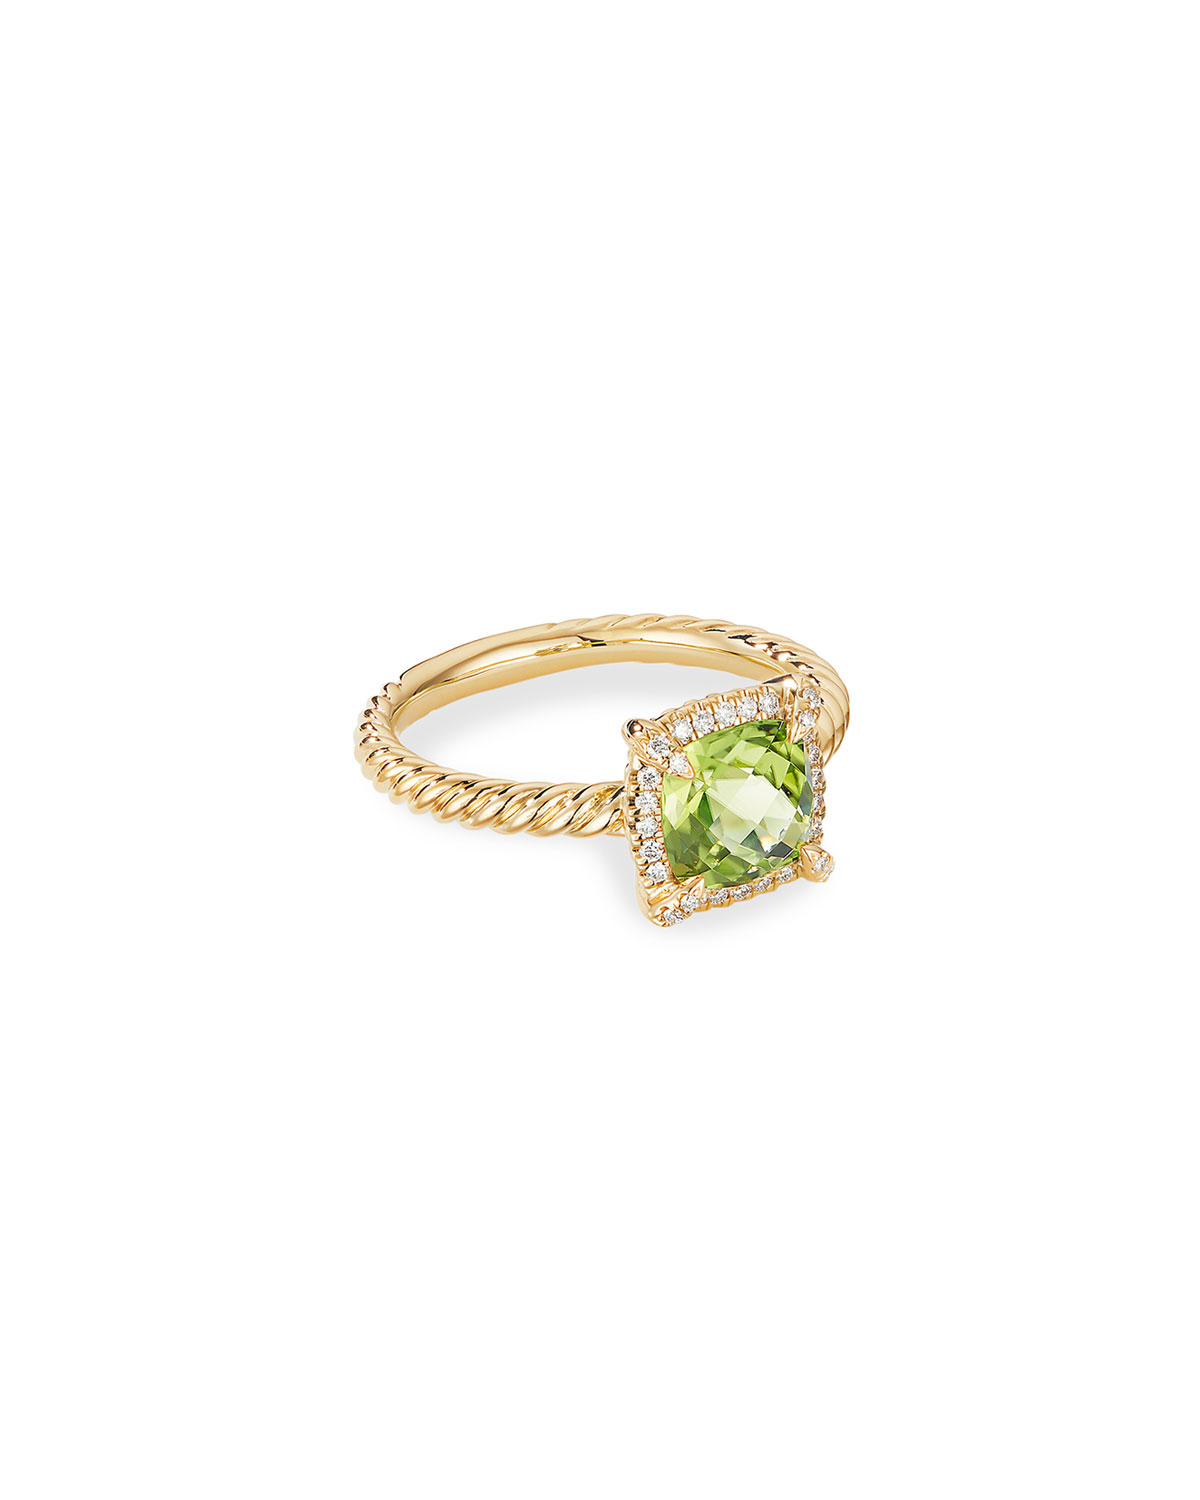 David Yurman Petite Chatelaine Pave Bezel Ring in 18K Gold with Peridot, Size 7